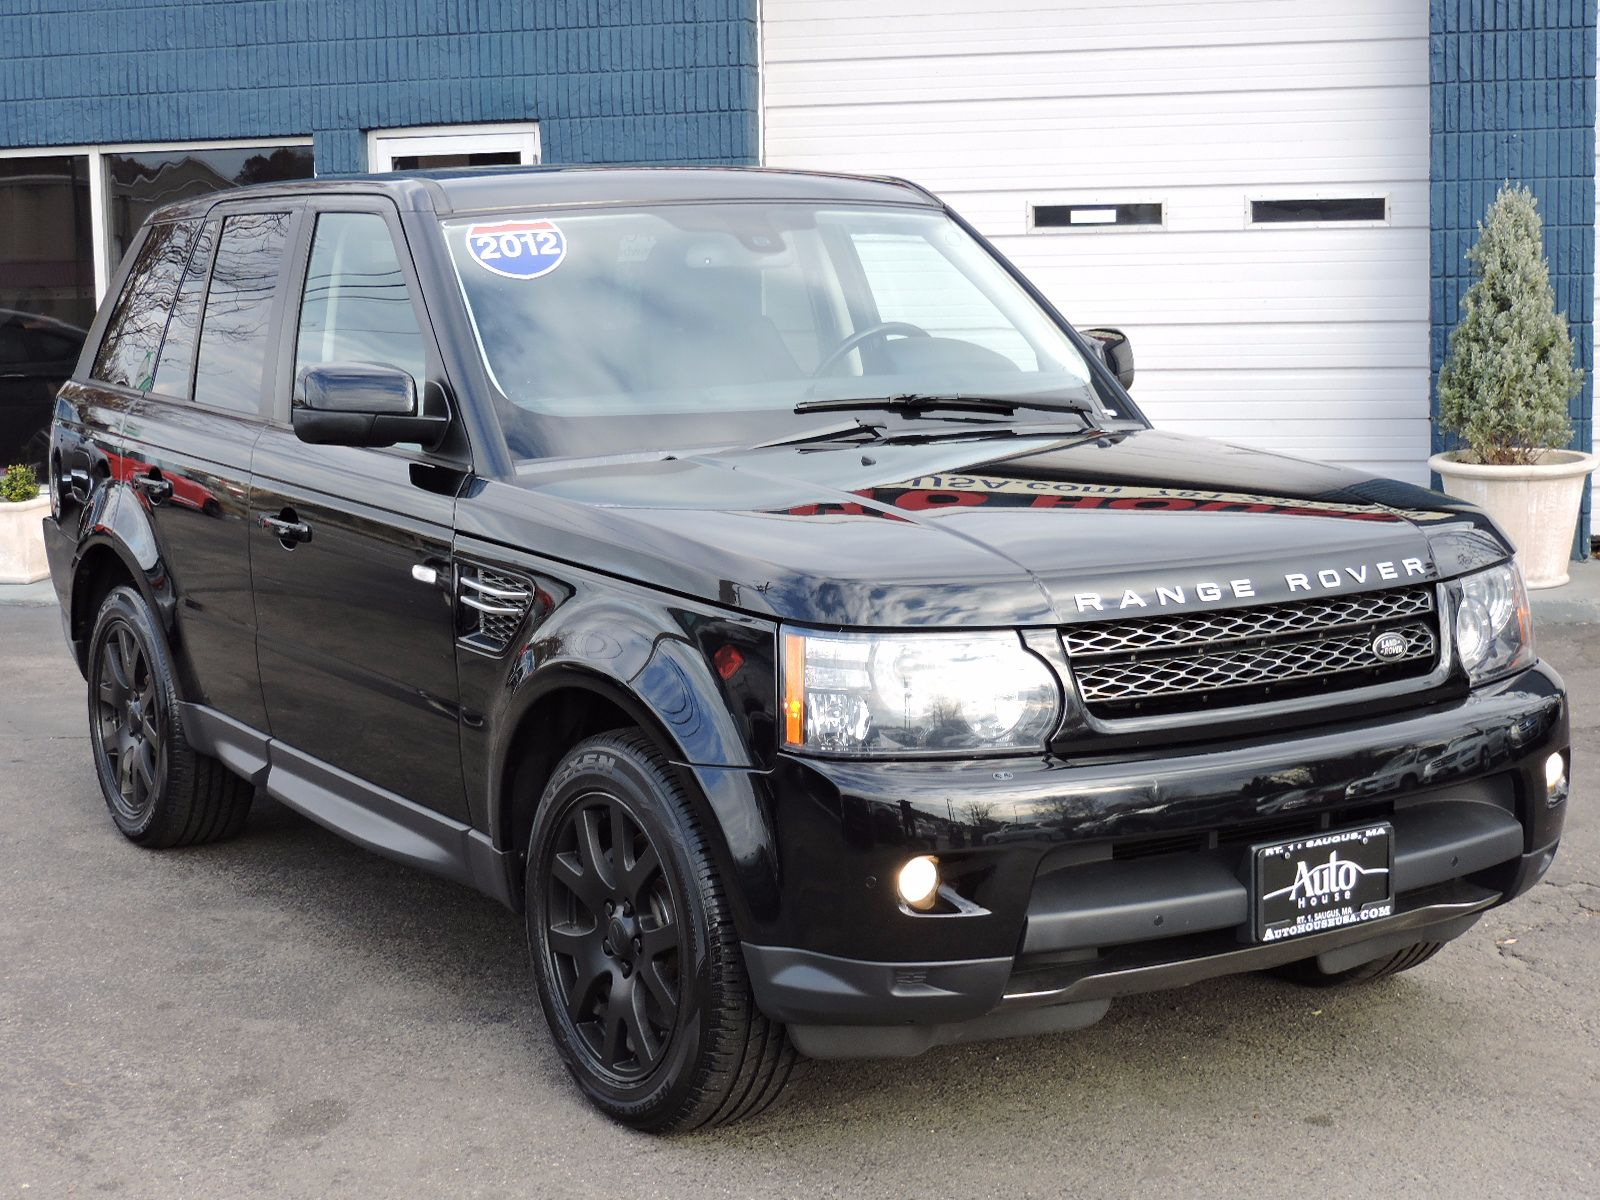 2012 Land Rover Range Rover HSE Sport - All Wheel Drive - Navigation